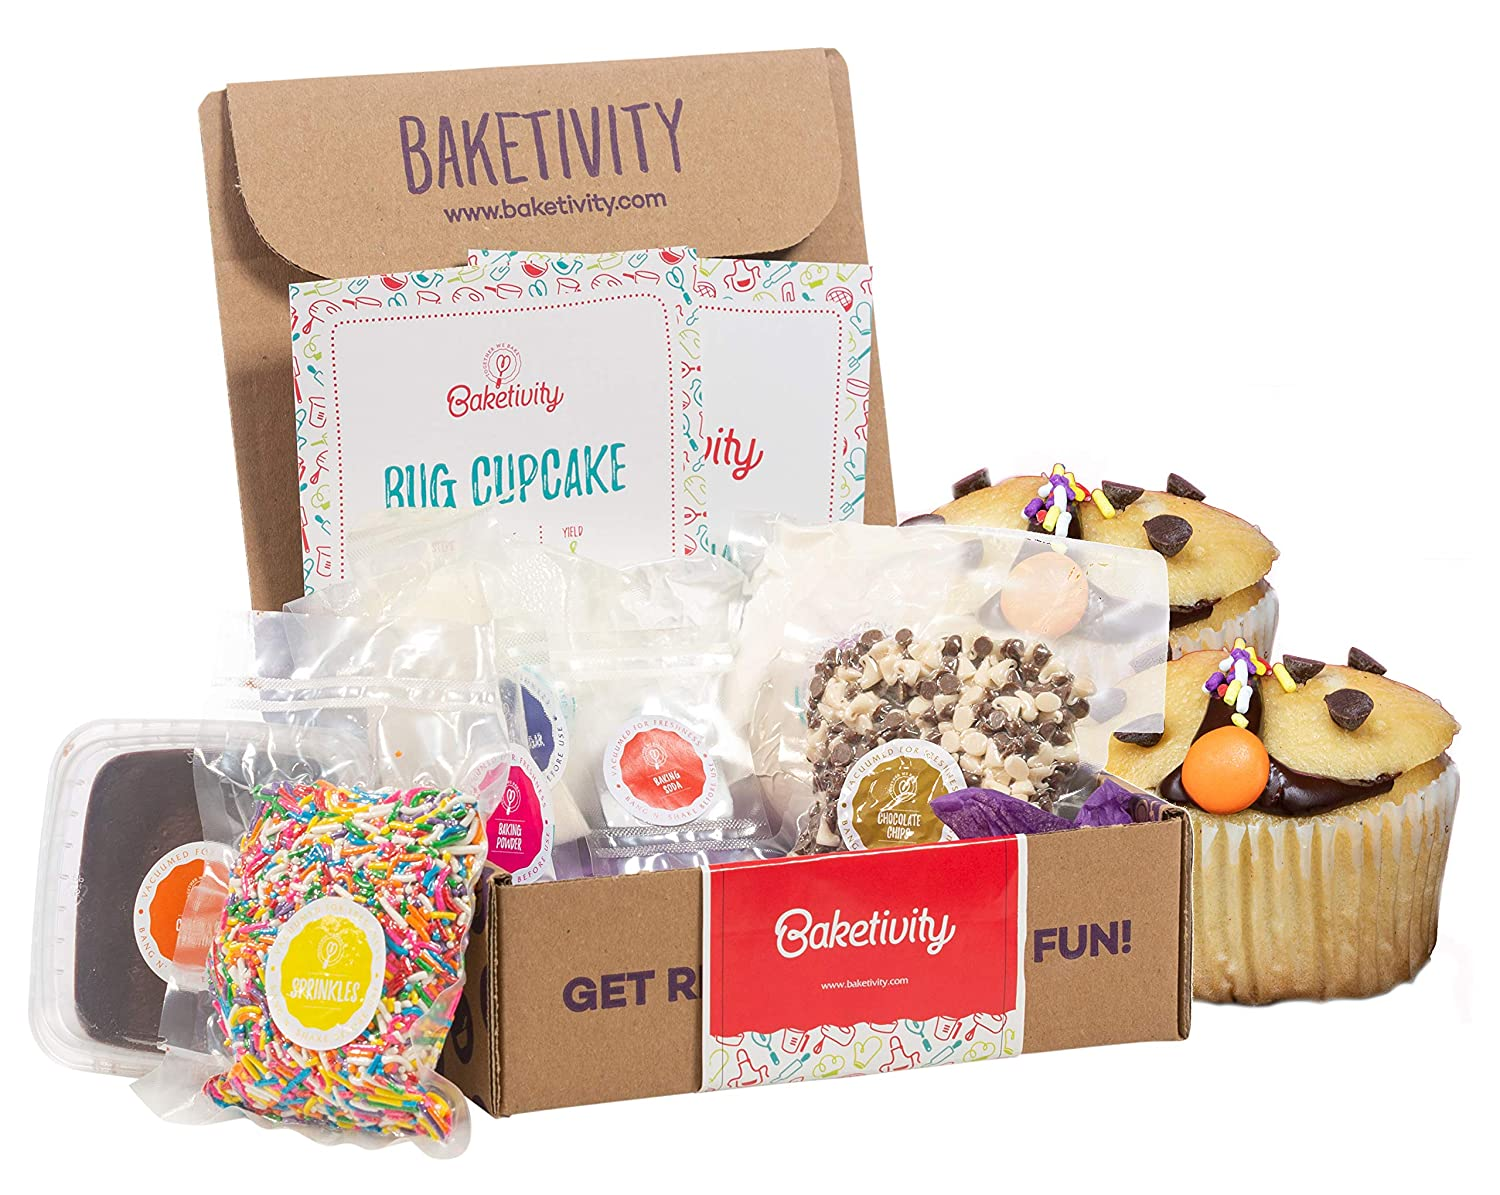 BAKETIVITY Kids Baking DIY Activity Kit - Bake Delicious Bug Cupcakes With Pre-Measured Ingredients – Best Gift Idea For Boys And Girls Ages 6-12